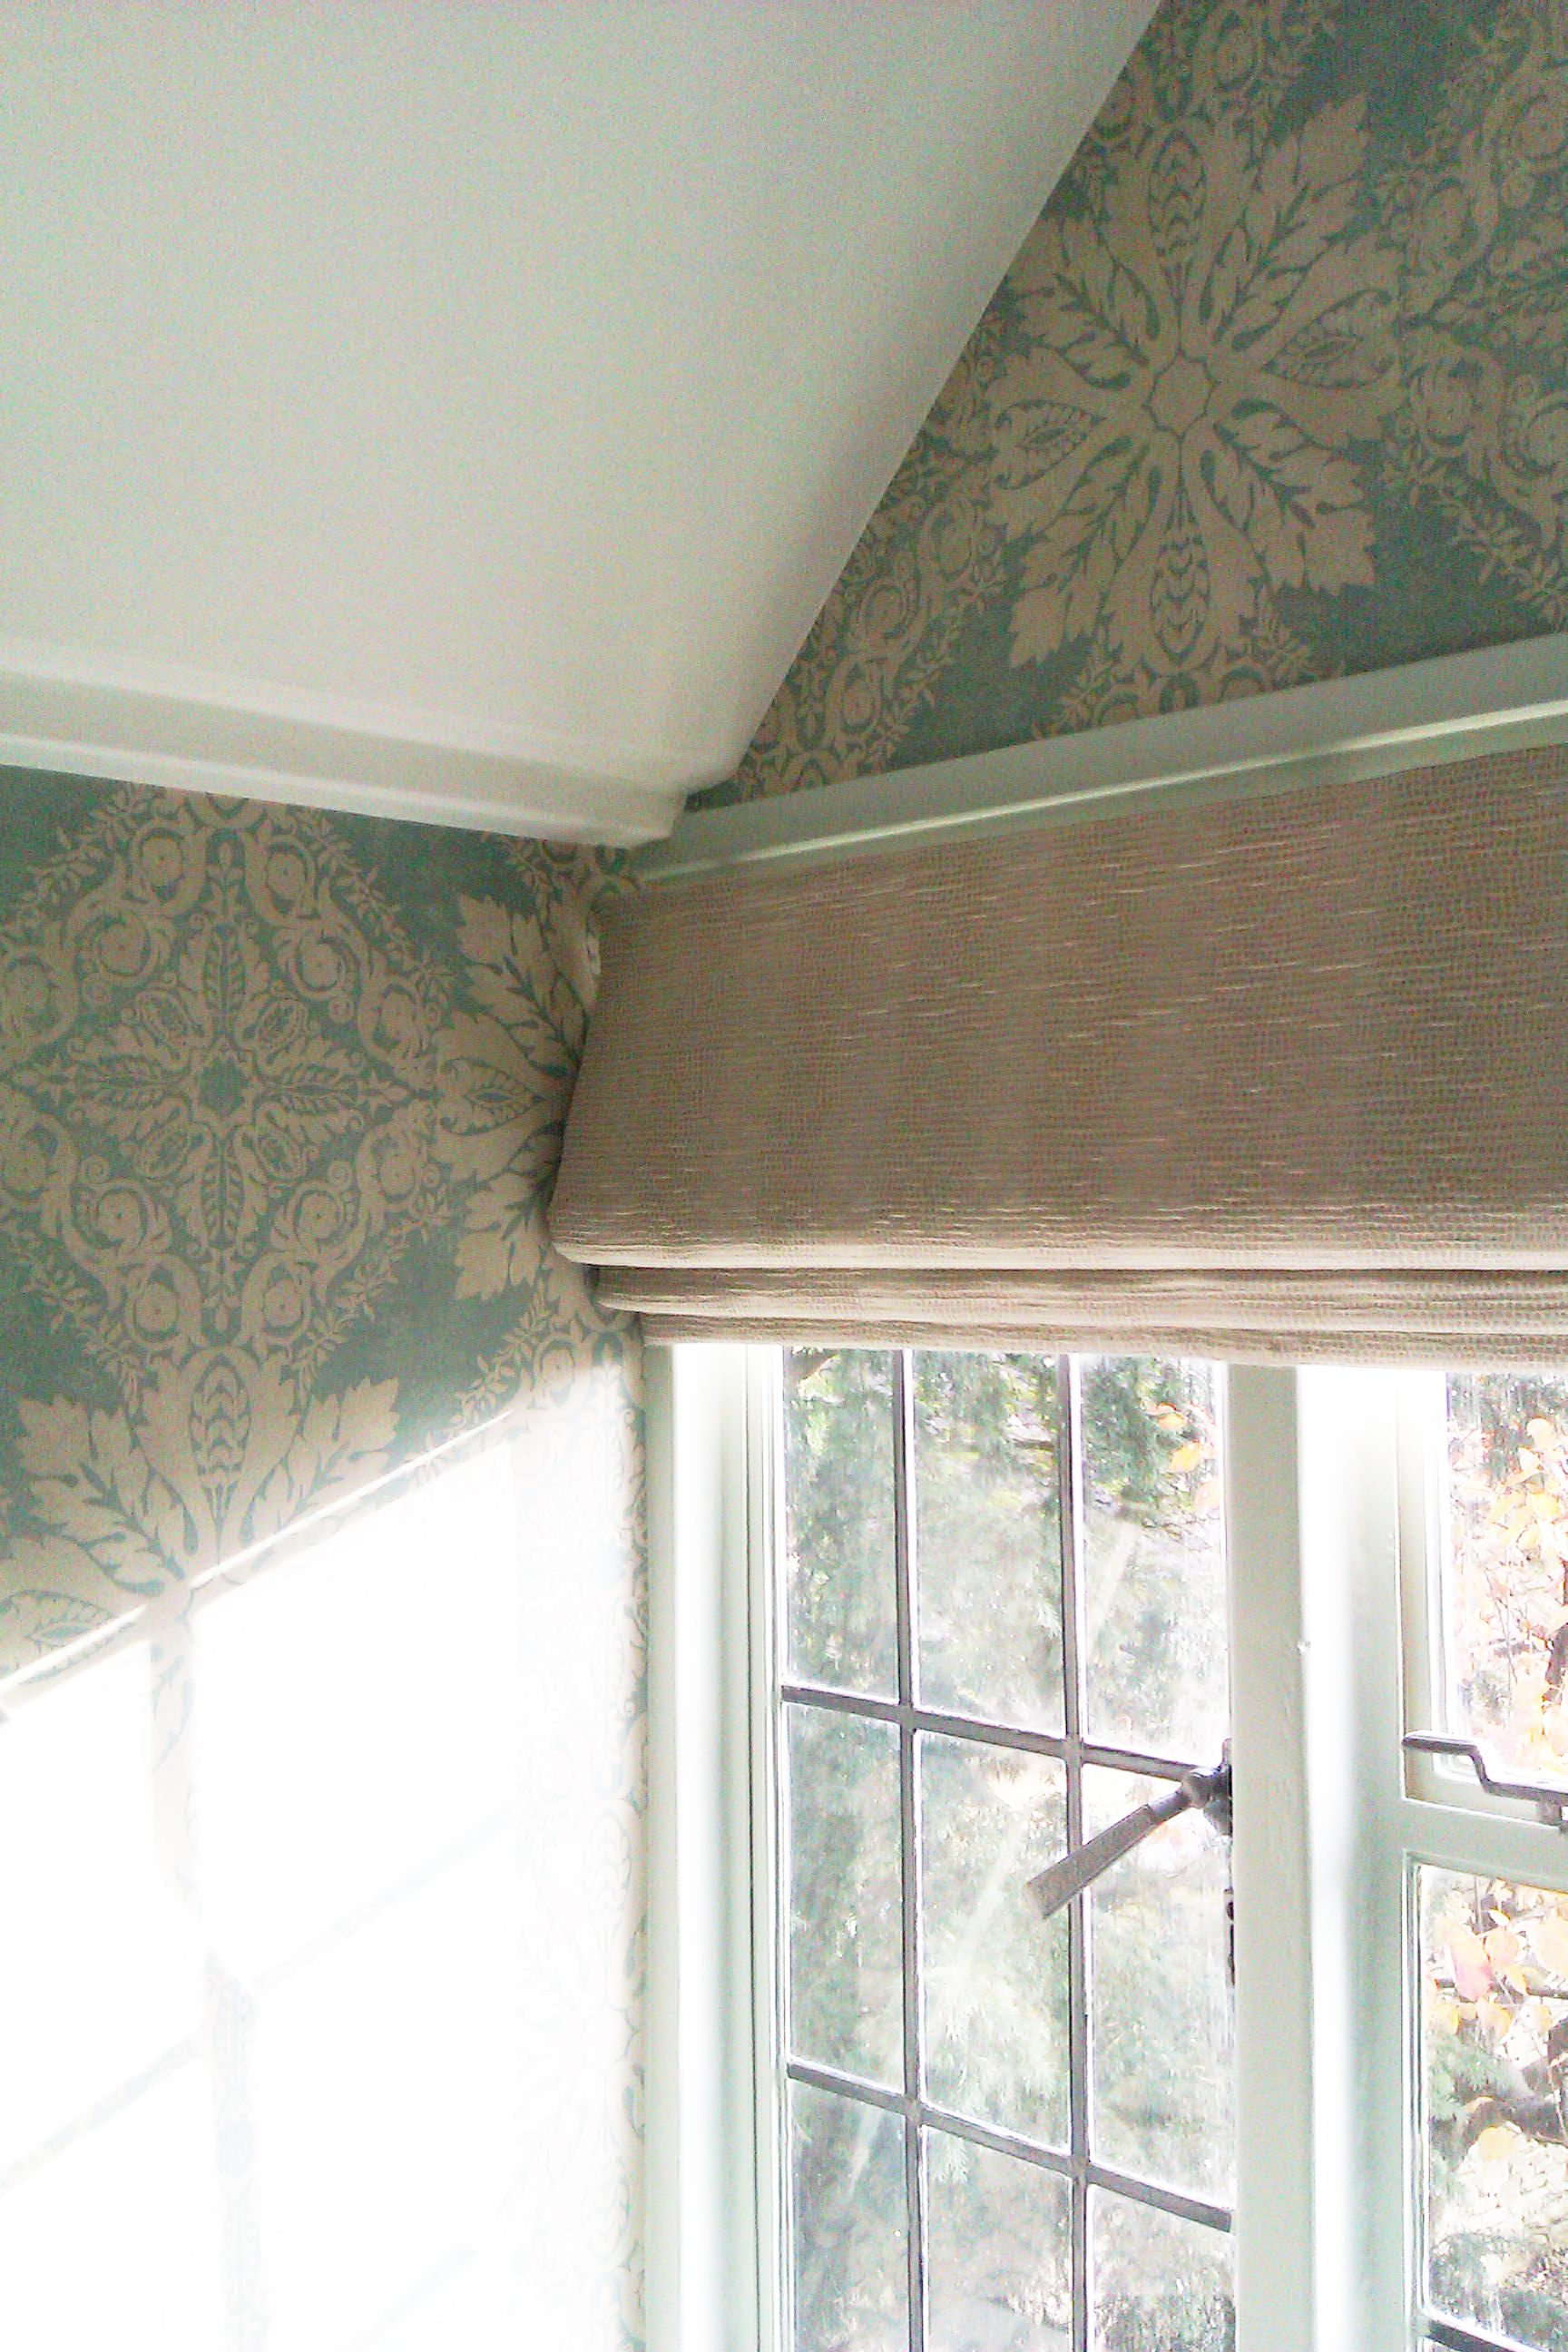 Interlined roman blind - Lower Slaughter